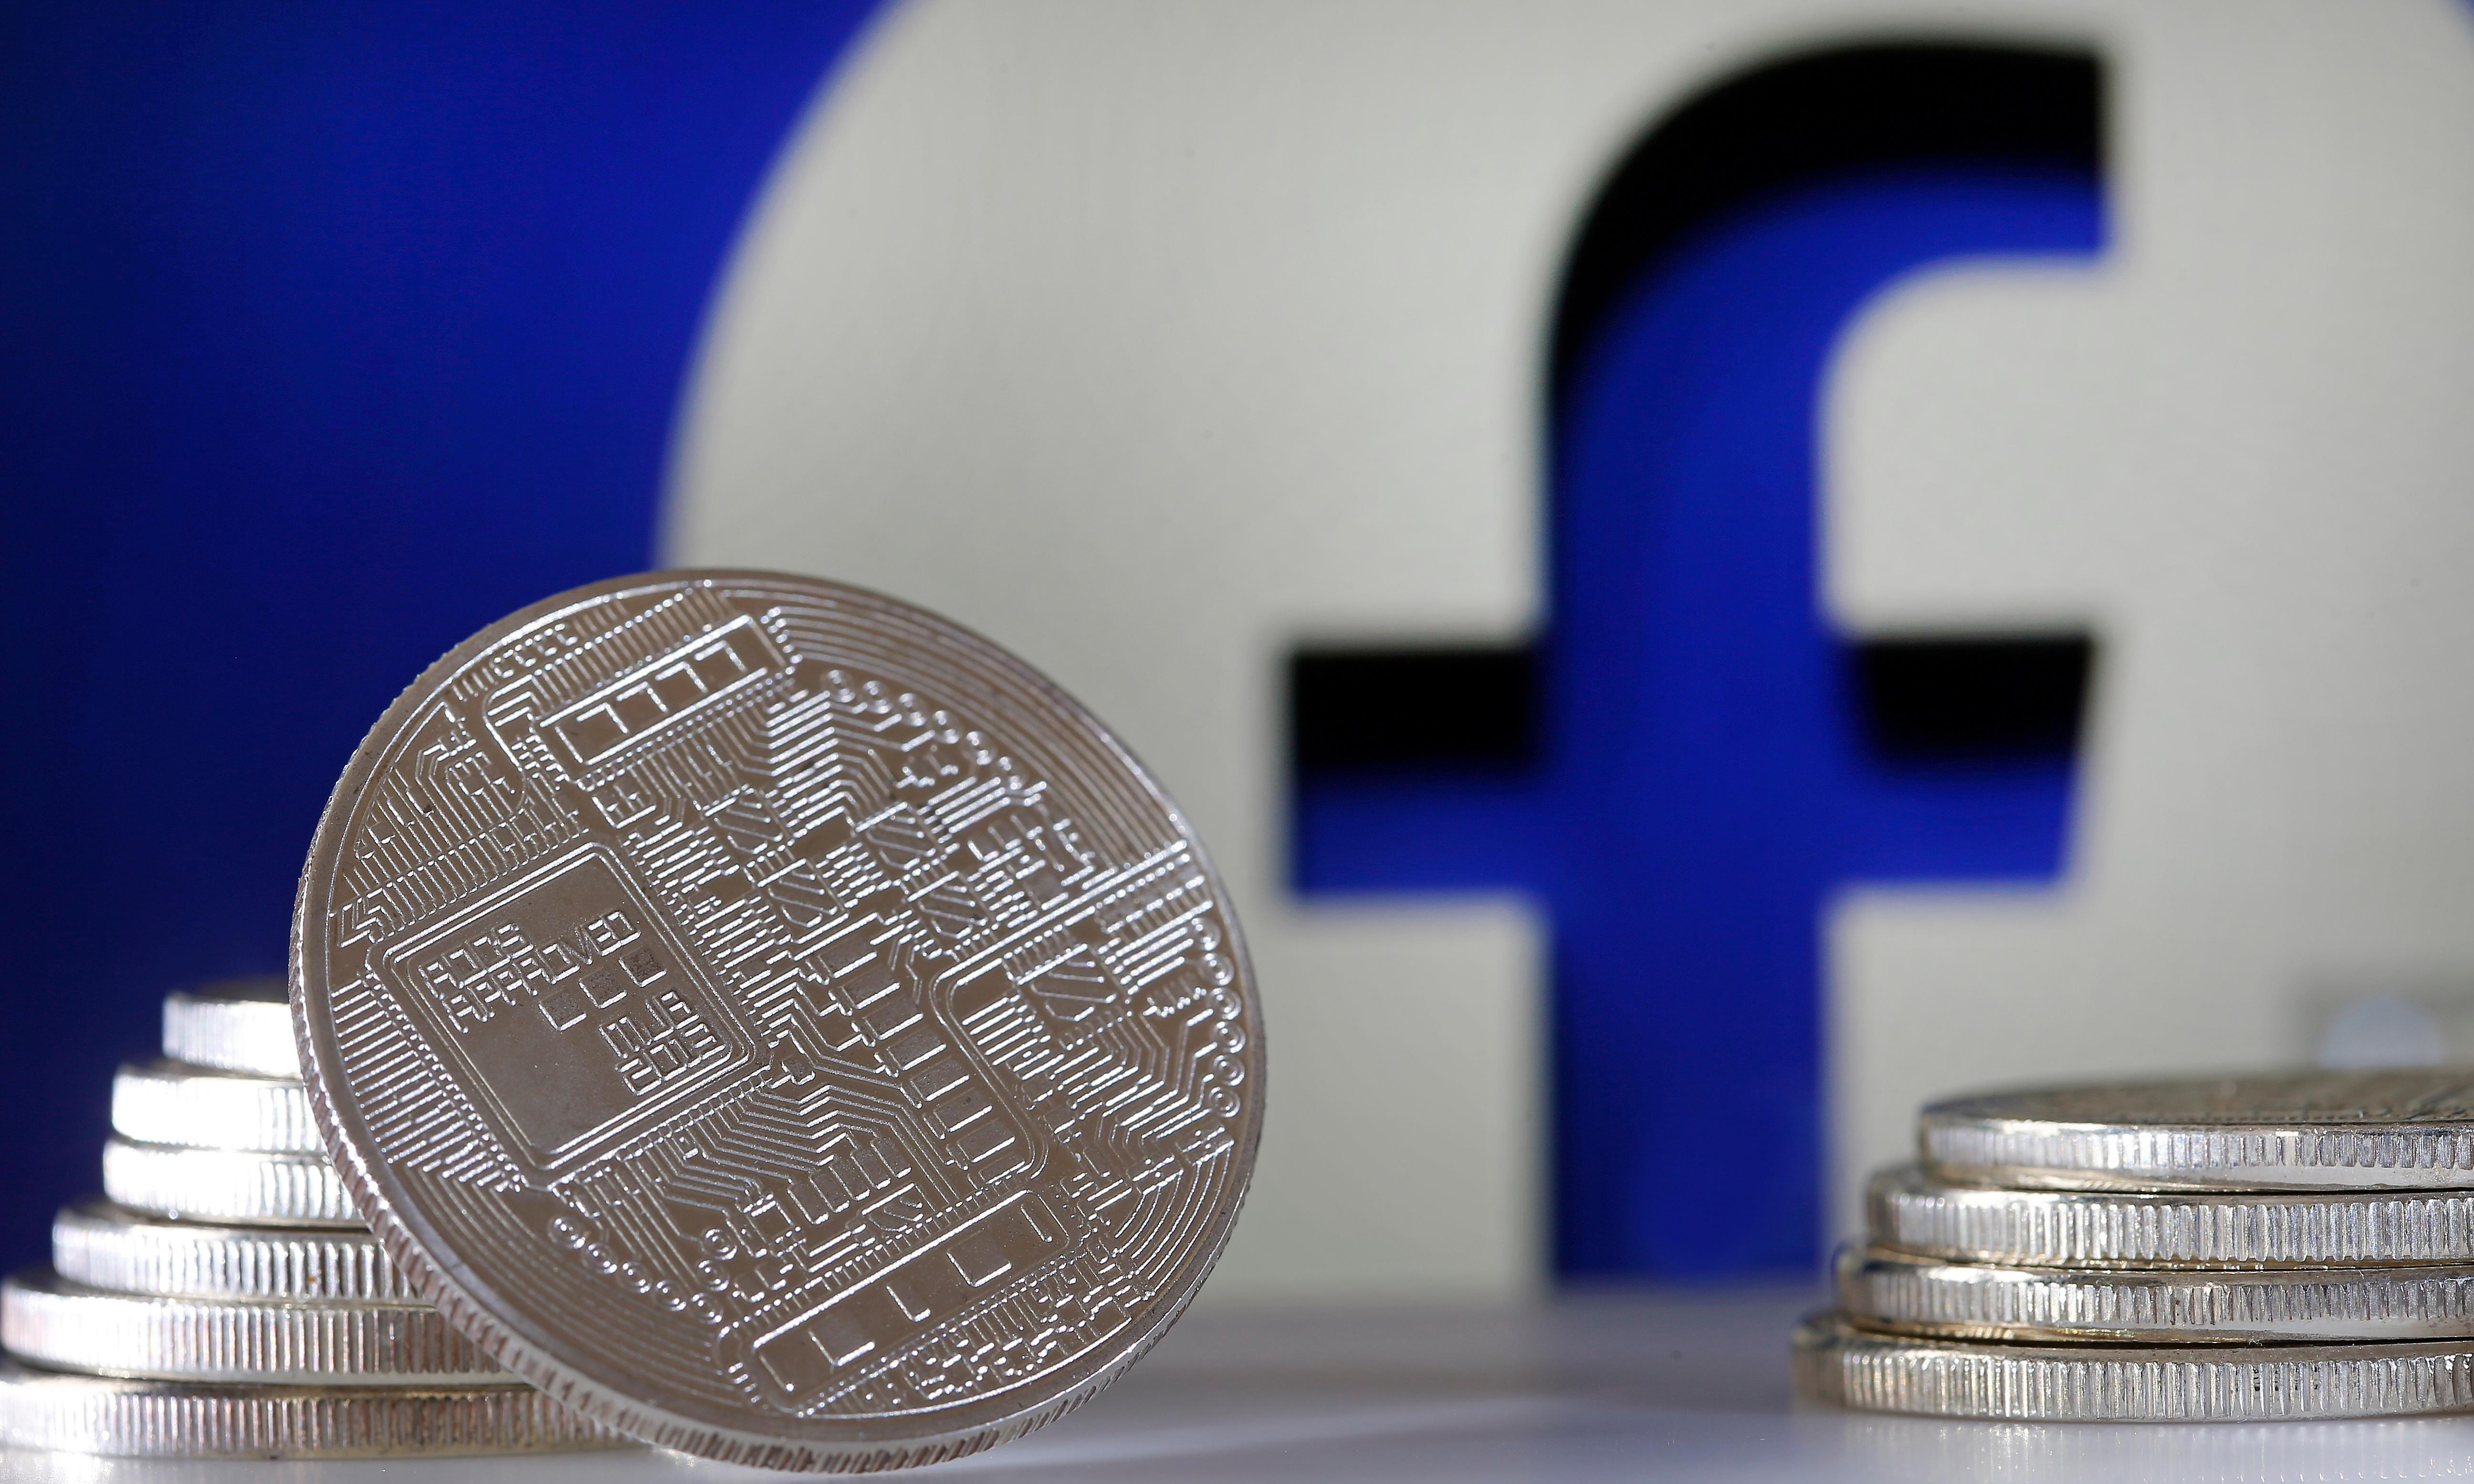 Facebook's Libra cryptocurrency 'poses risks to global banking'